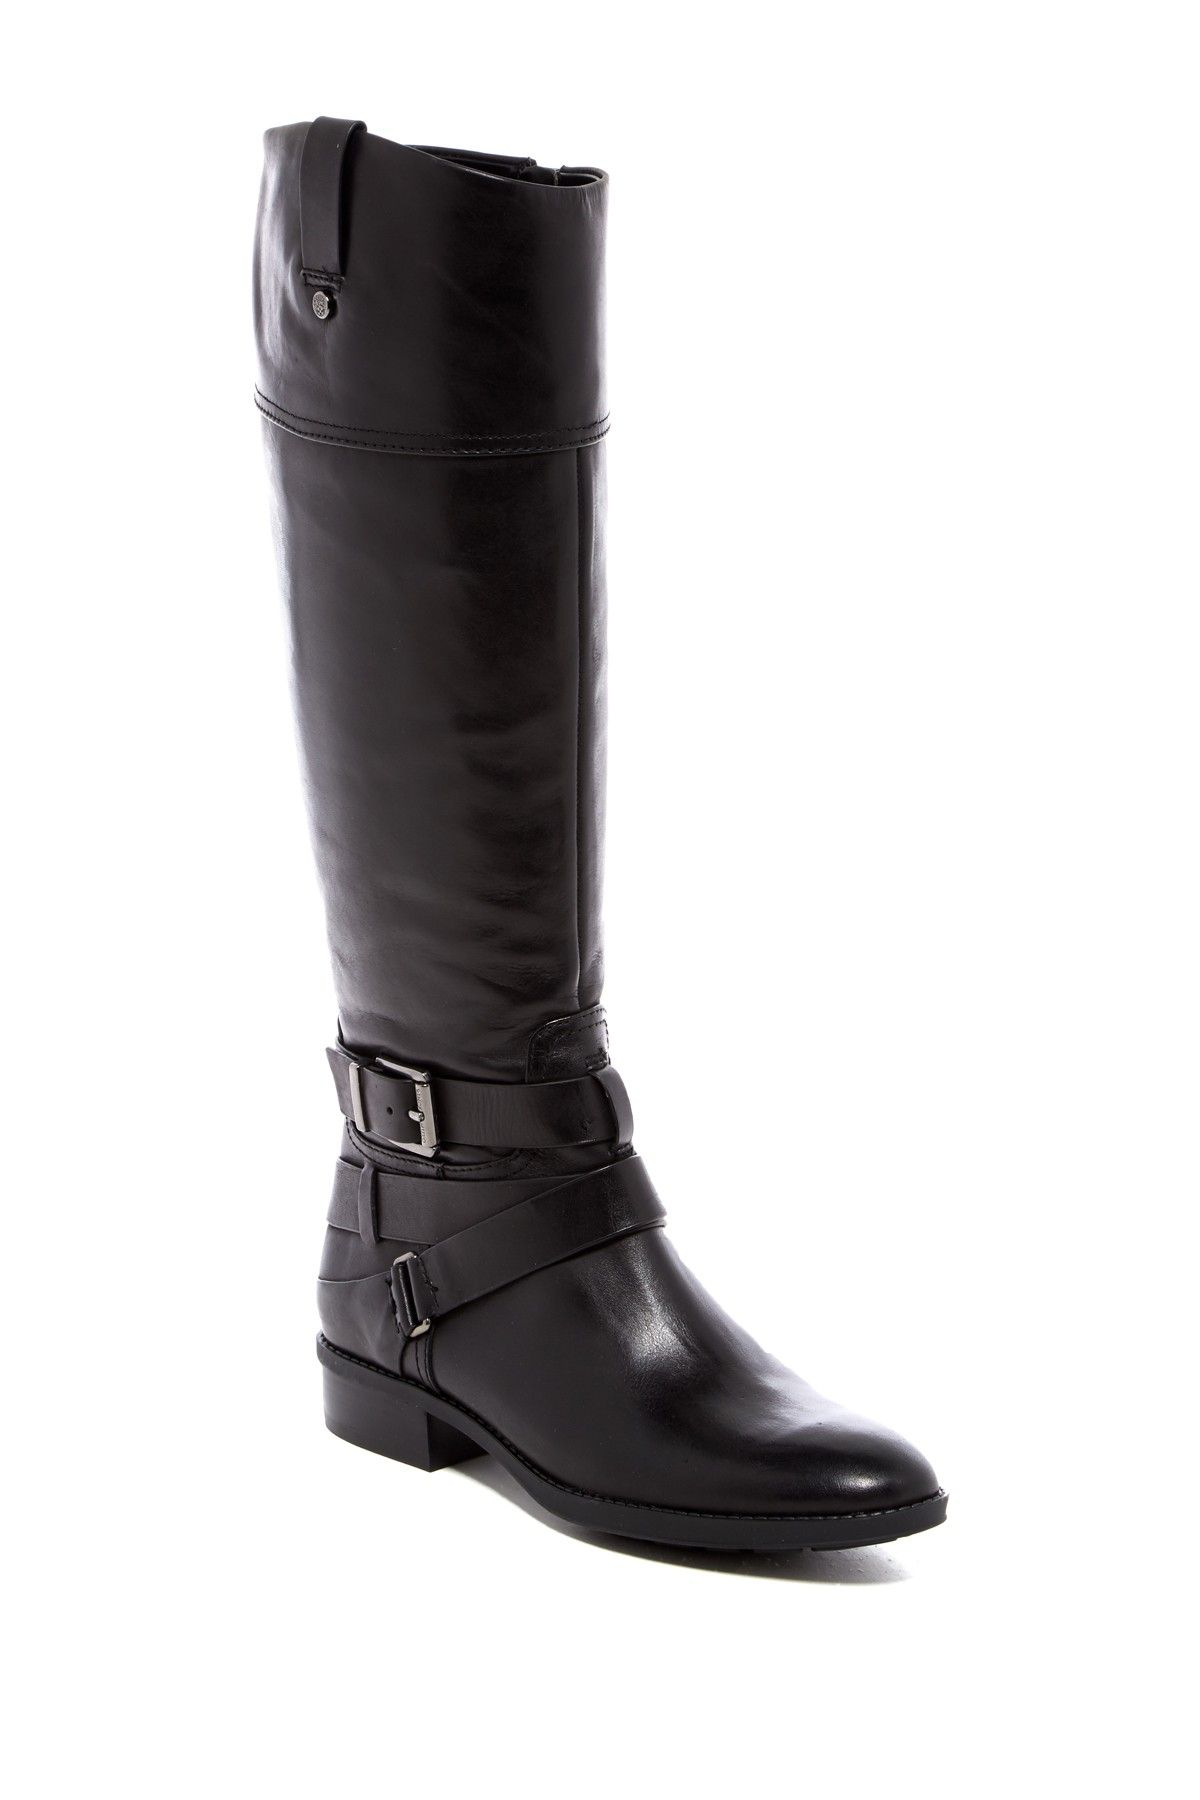 ed593e3688b Vince Camuto - Pazell Tall Boot at Nordstrom Rack. Free Shipping on orders  over